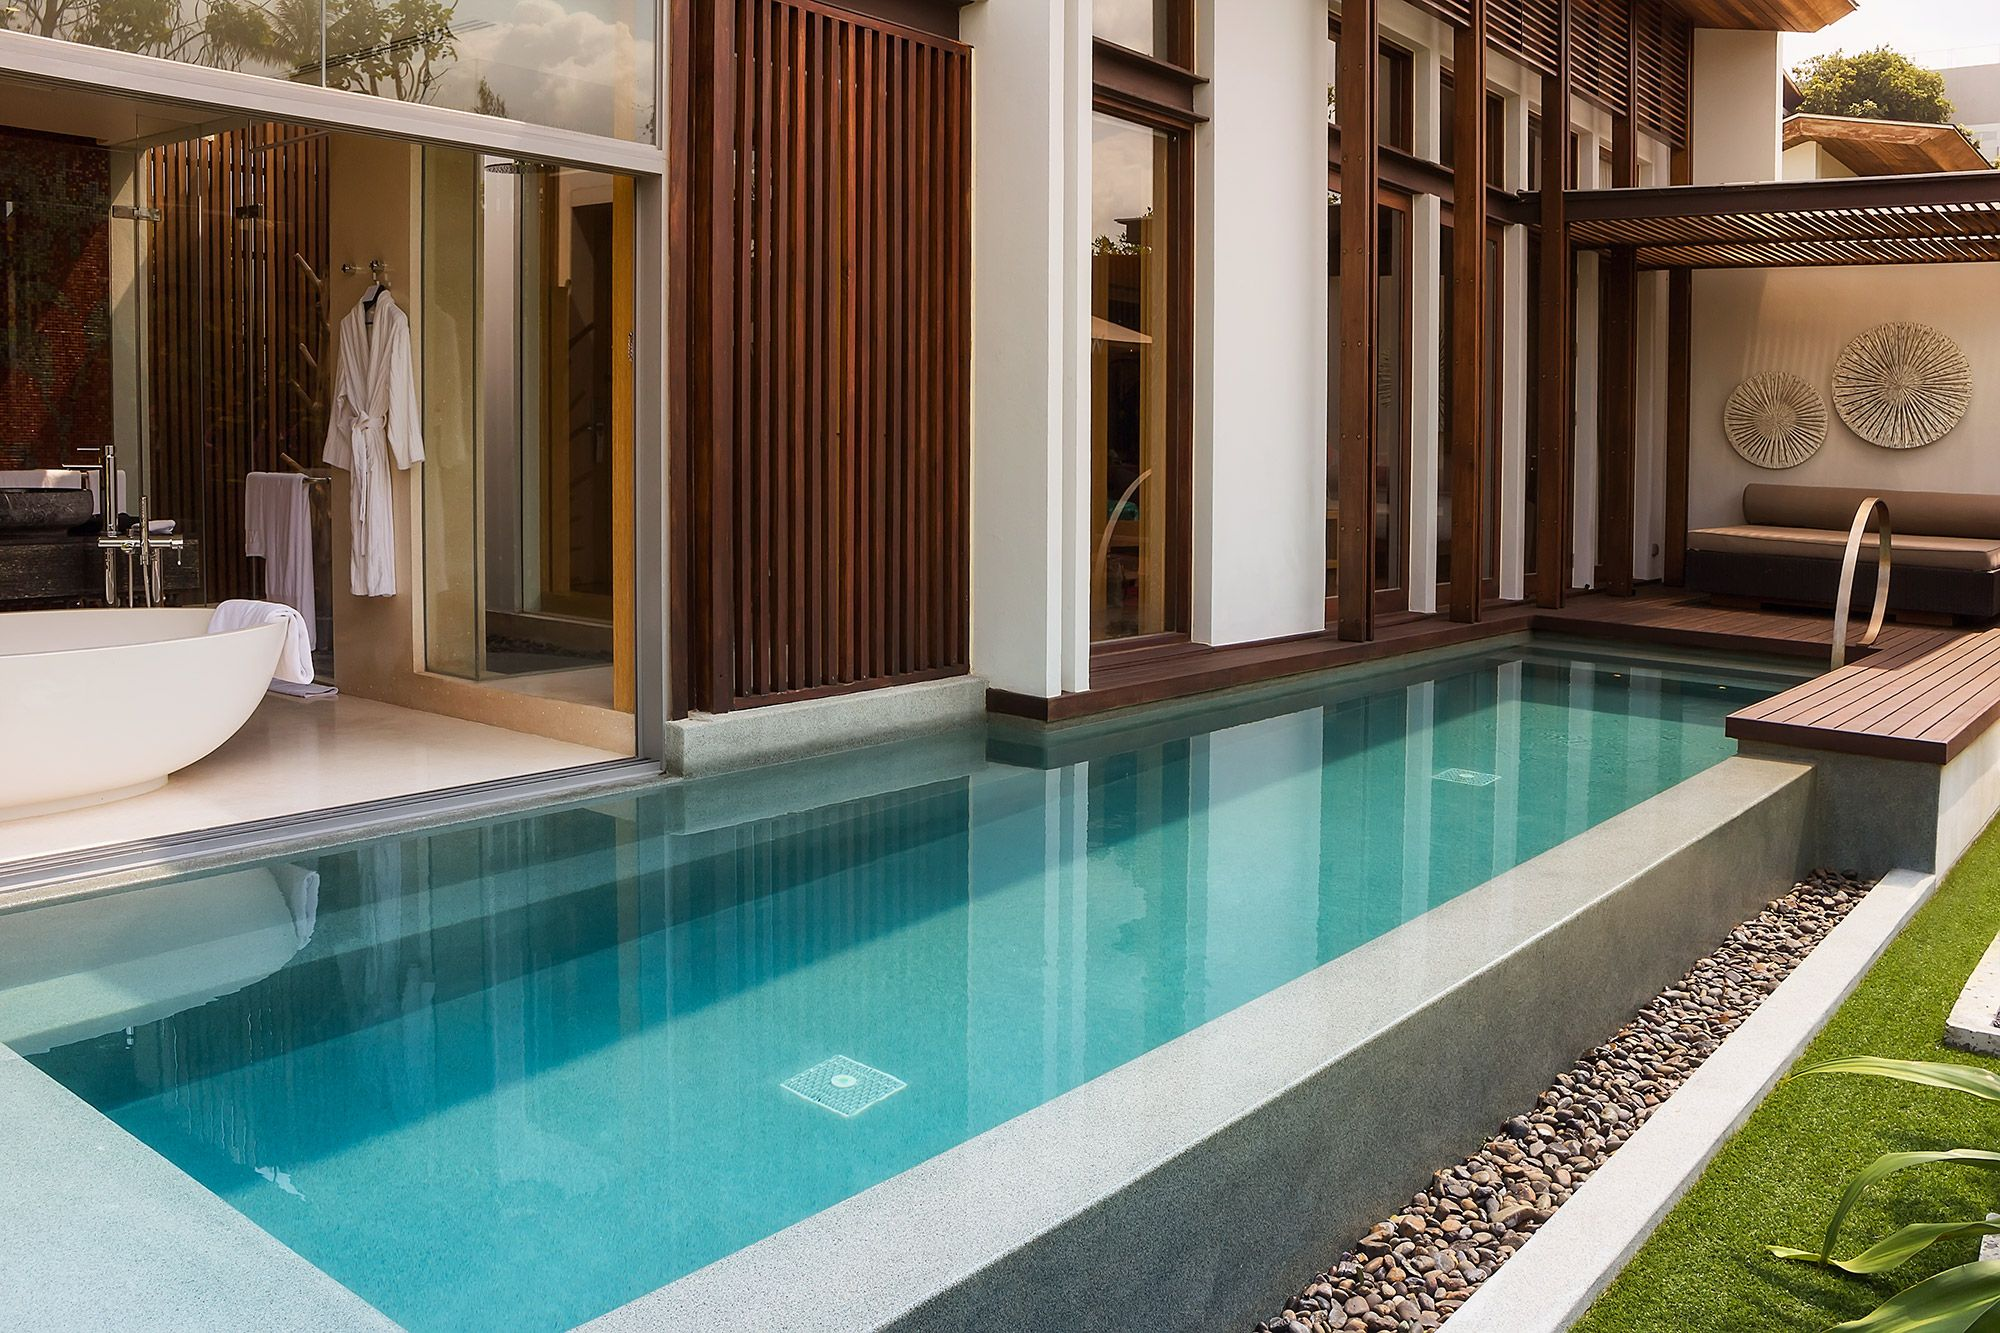 Private indoor pool suites  General : Hotels And Resorts Luxury House Swimming Pool With Cool ...